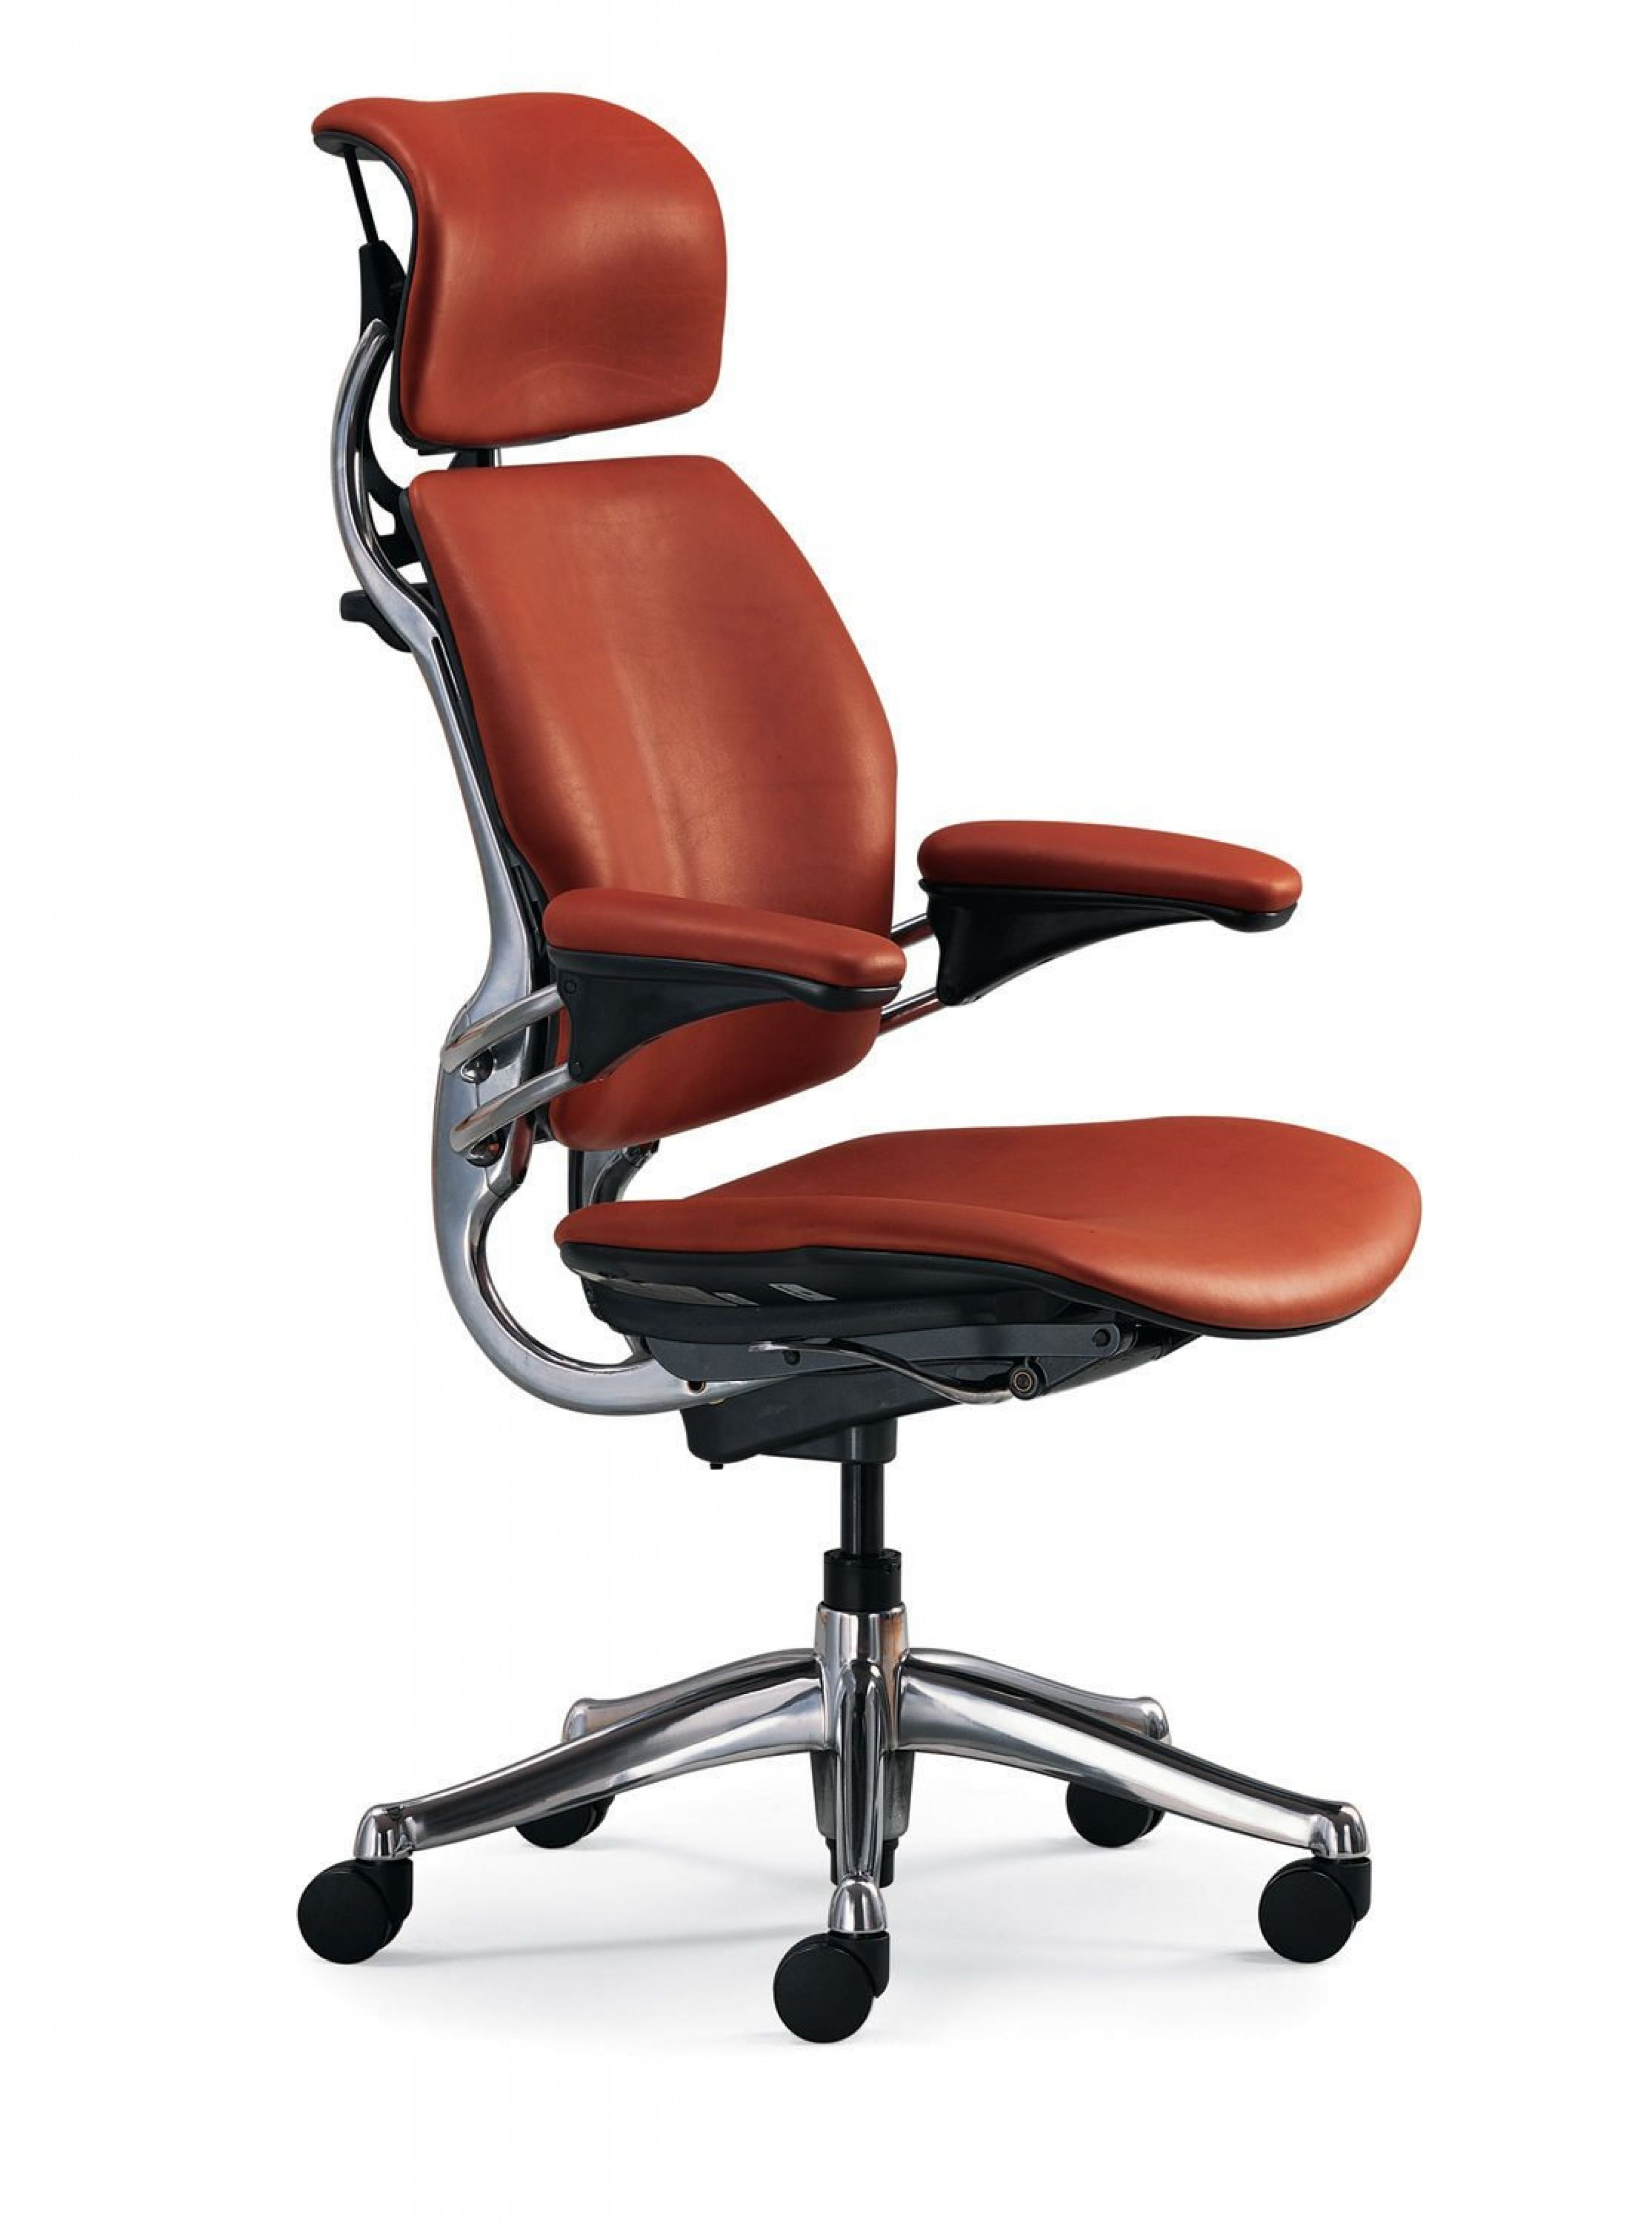 Office Chairs For Less Best Interior Paint Brand Check More At Http